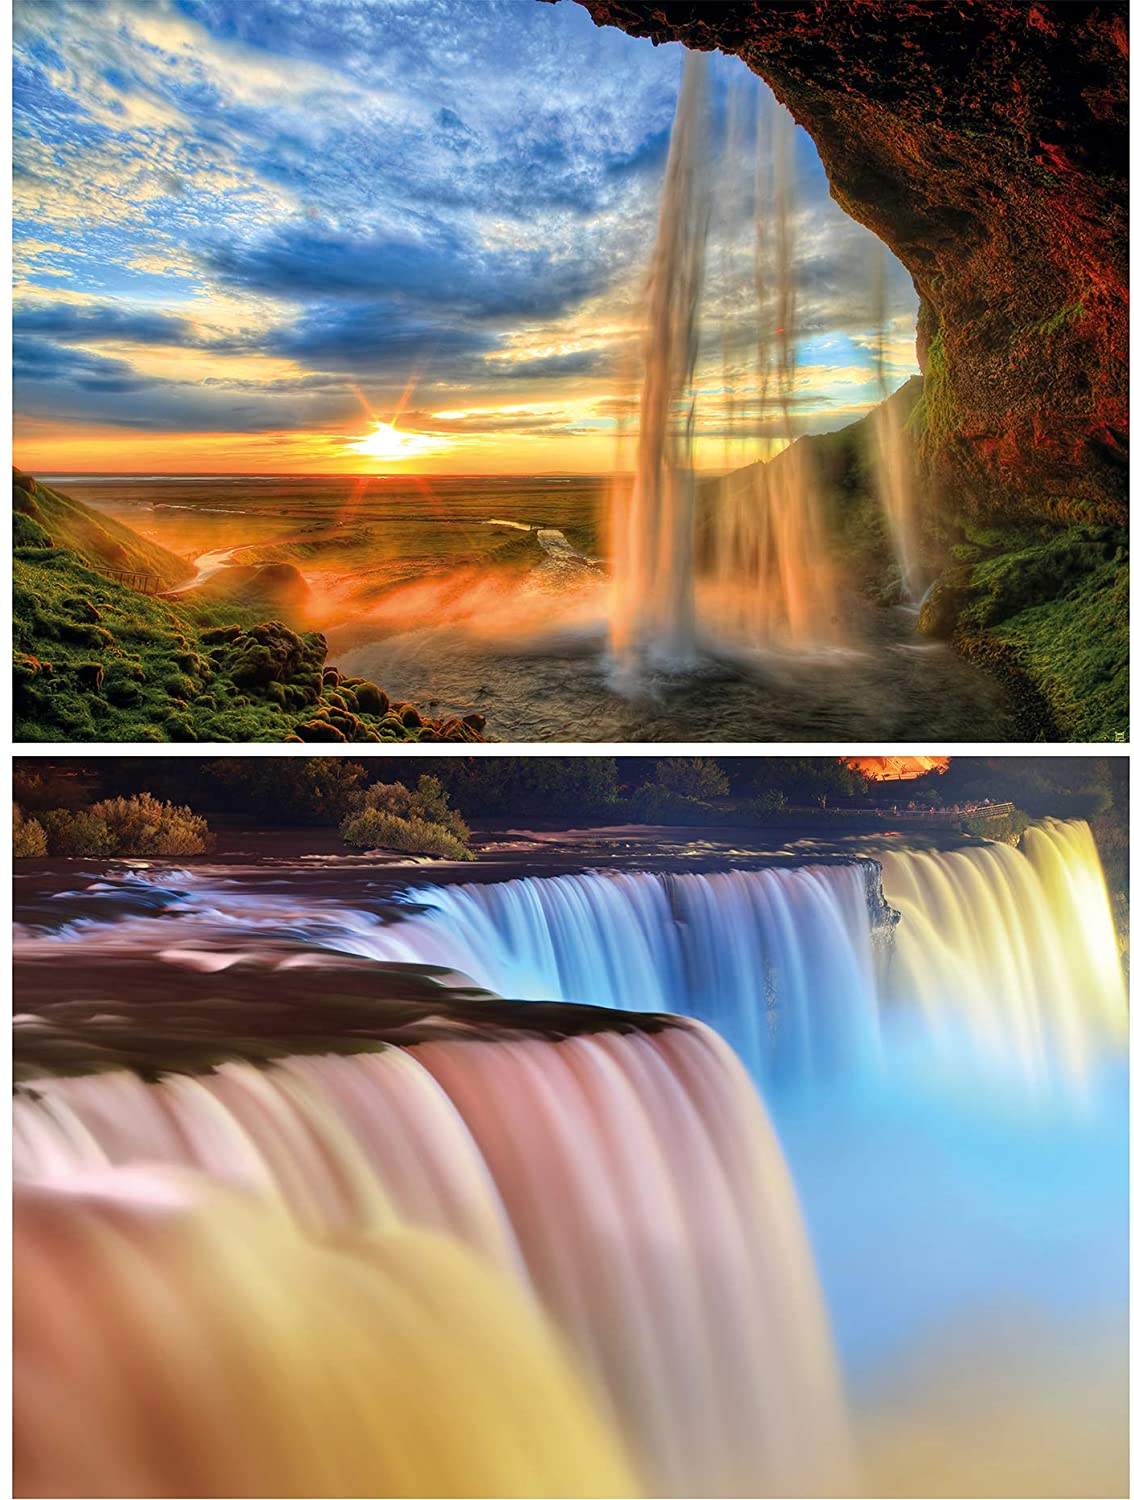 GREAT ART Set of 2 XXL Posters – Waterfalls – Niagara Falls & Sunset Park Colorful Oasis Holiday Nature Landscape Wall Picture Decoration Photo Poster (140 x 100cm)